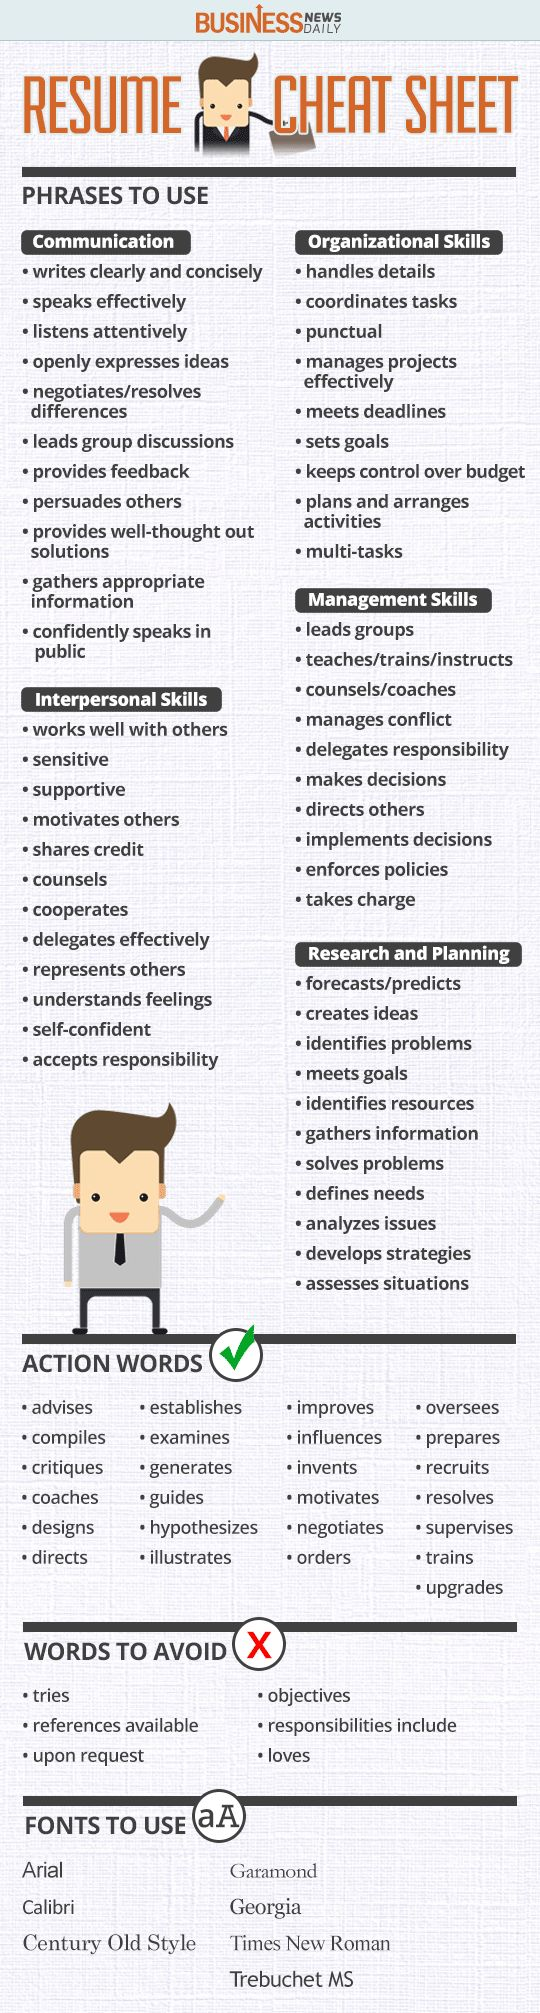 Opposenewapstandardsus  Pretty  Ideas About Resume On Pinterest  Cv Format Resume Cv And  With Extraordinary Resume Cheat Sheet Infographic Andrews Almost Done With A Complete Unit On Employment Which With Easy On The Eye Download Resume Templates Free Also Interest For Resume In Addition Resume Contact Information And Nanny Resume Objective As Well As Restaurant Management Resume Additionally Business Owner Resume Sample From Pinterestcom With Opposenewapstandardsus  Extraordinary  Ideas About Resume On Pinterest  Cv Format Resume Cv And  With Easy On The Eye Resume Cheat Sheet Infographic Andrews Almost Done With A Complete Unit On Employment Which And Pretty Download Resume Templates Free Also Interest For Resume In Addition Resume Contact Information From Pinterestcom